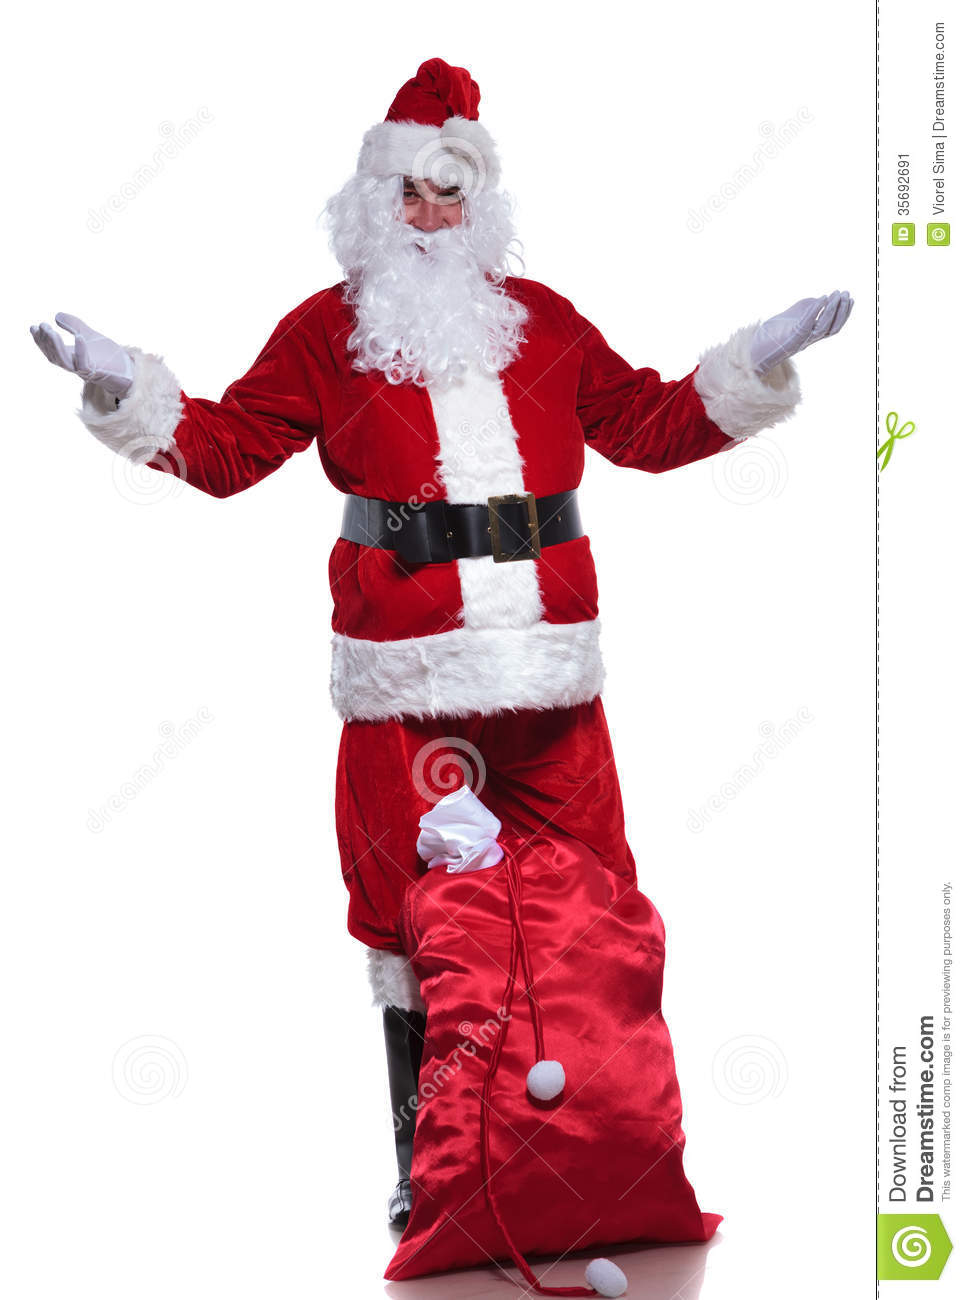 Full Body Picture Of Santa Claus Welcoming Stock Image